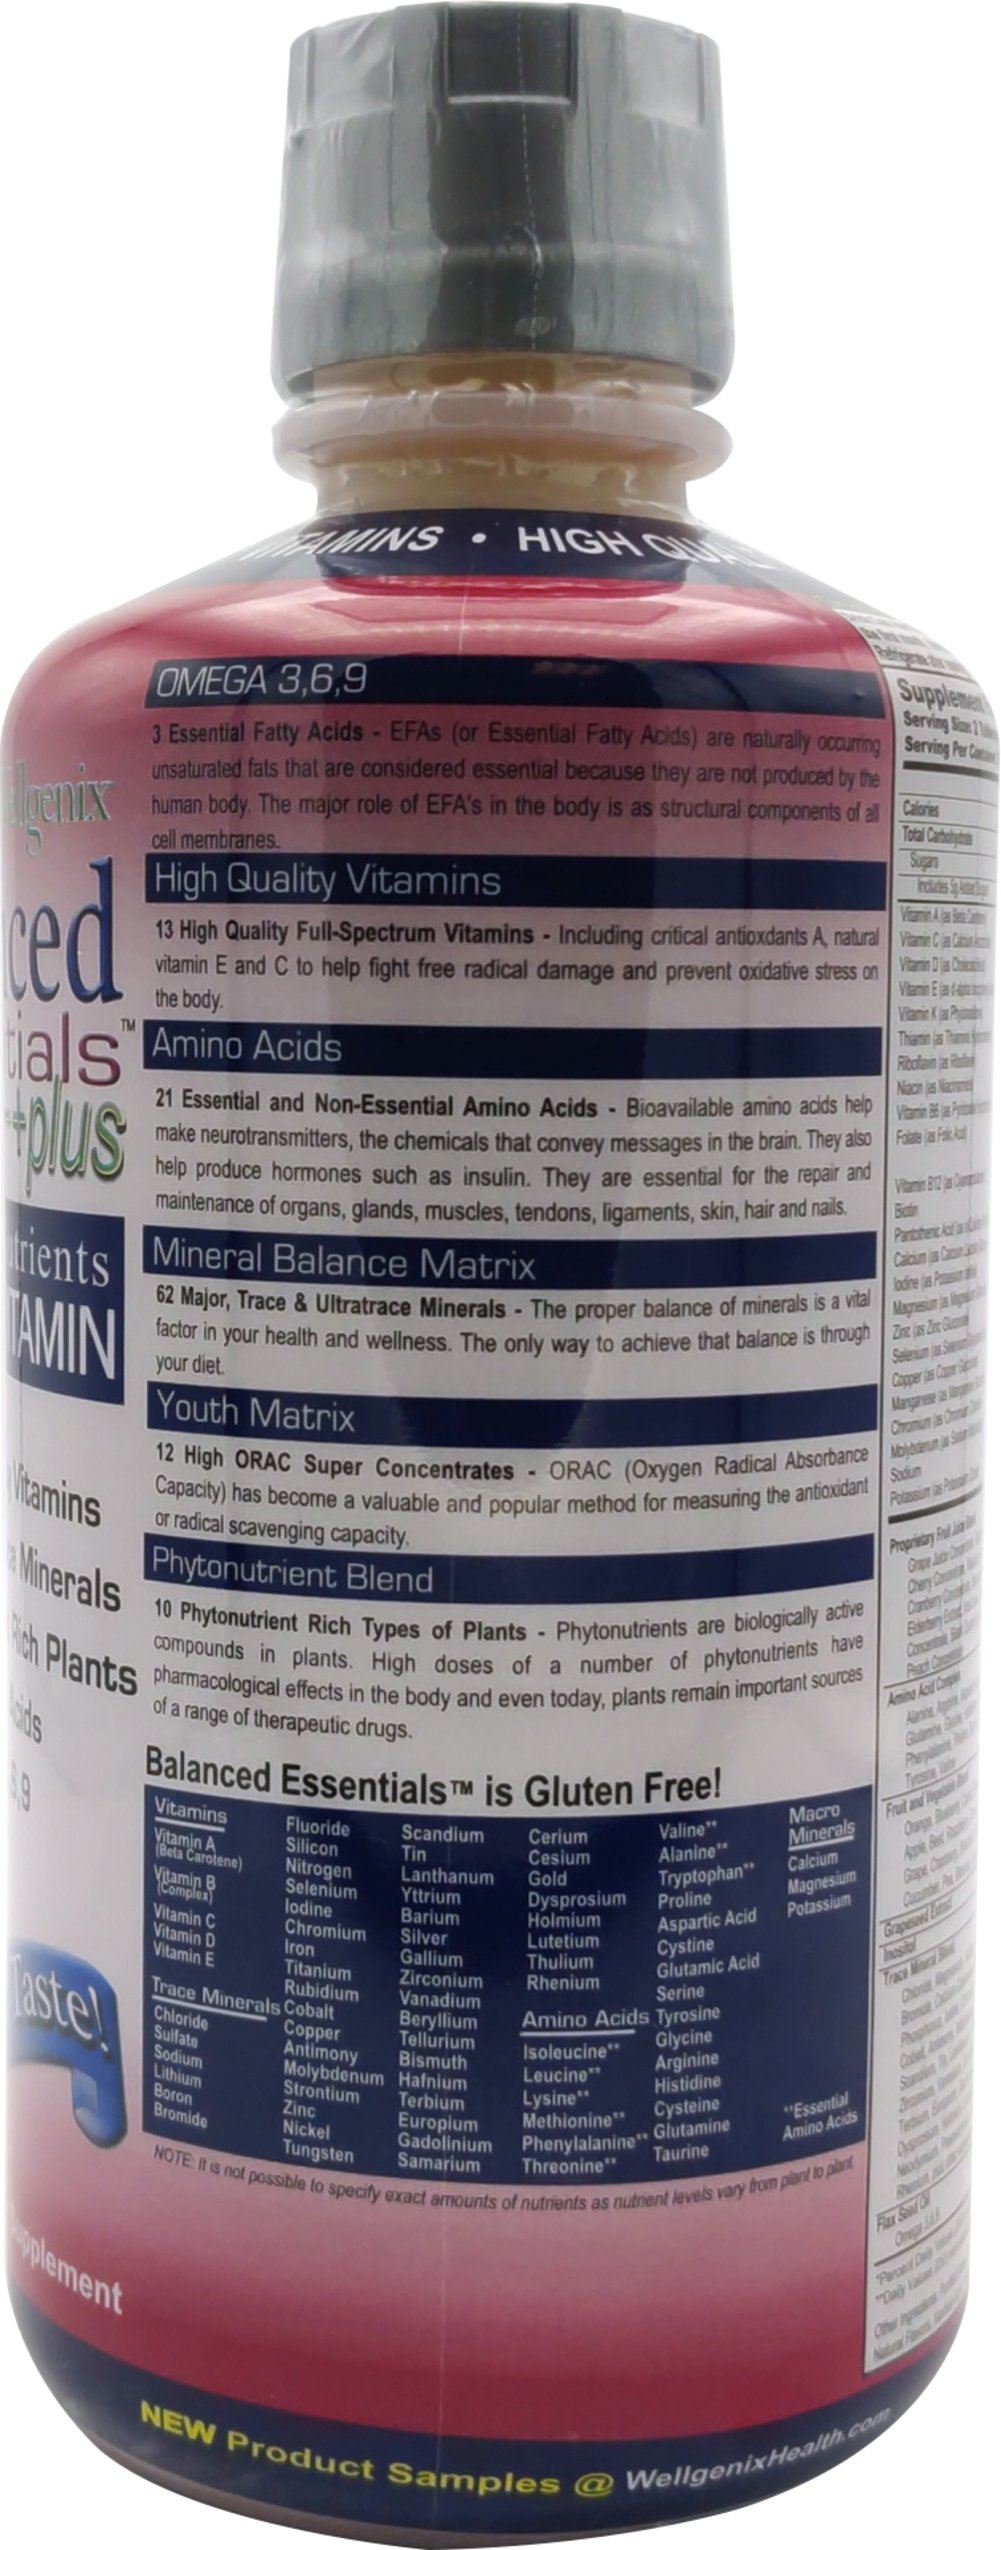 Balanced Essential™ Multivitamin Thumbnail Alternate Bottle View